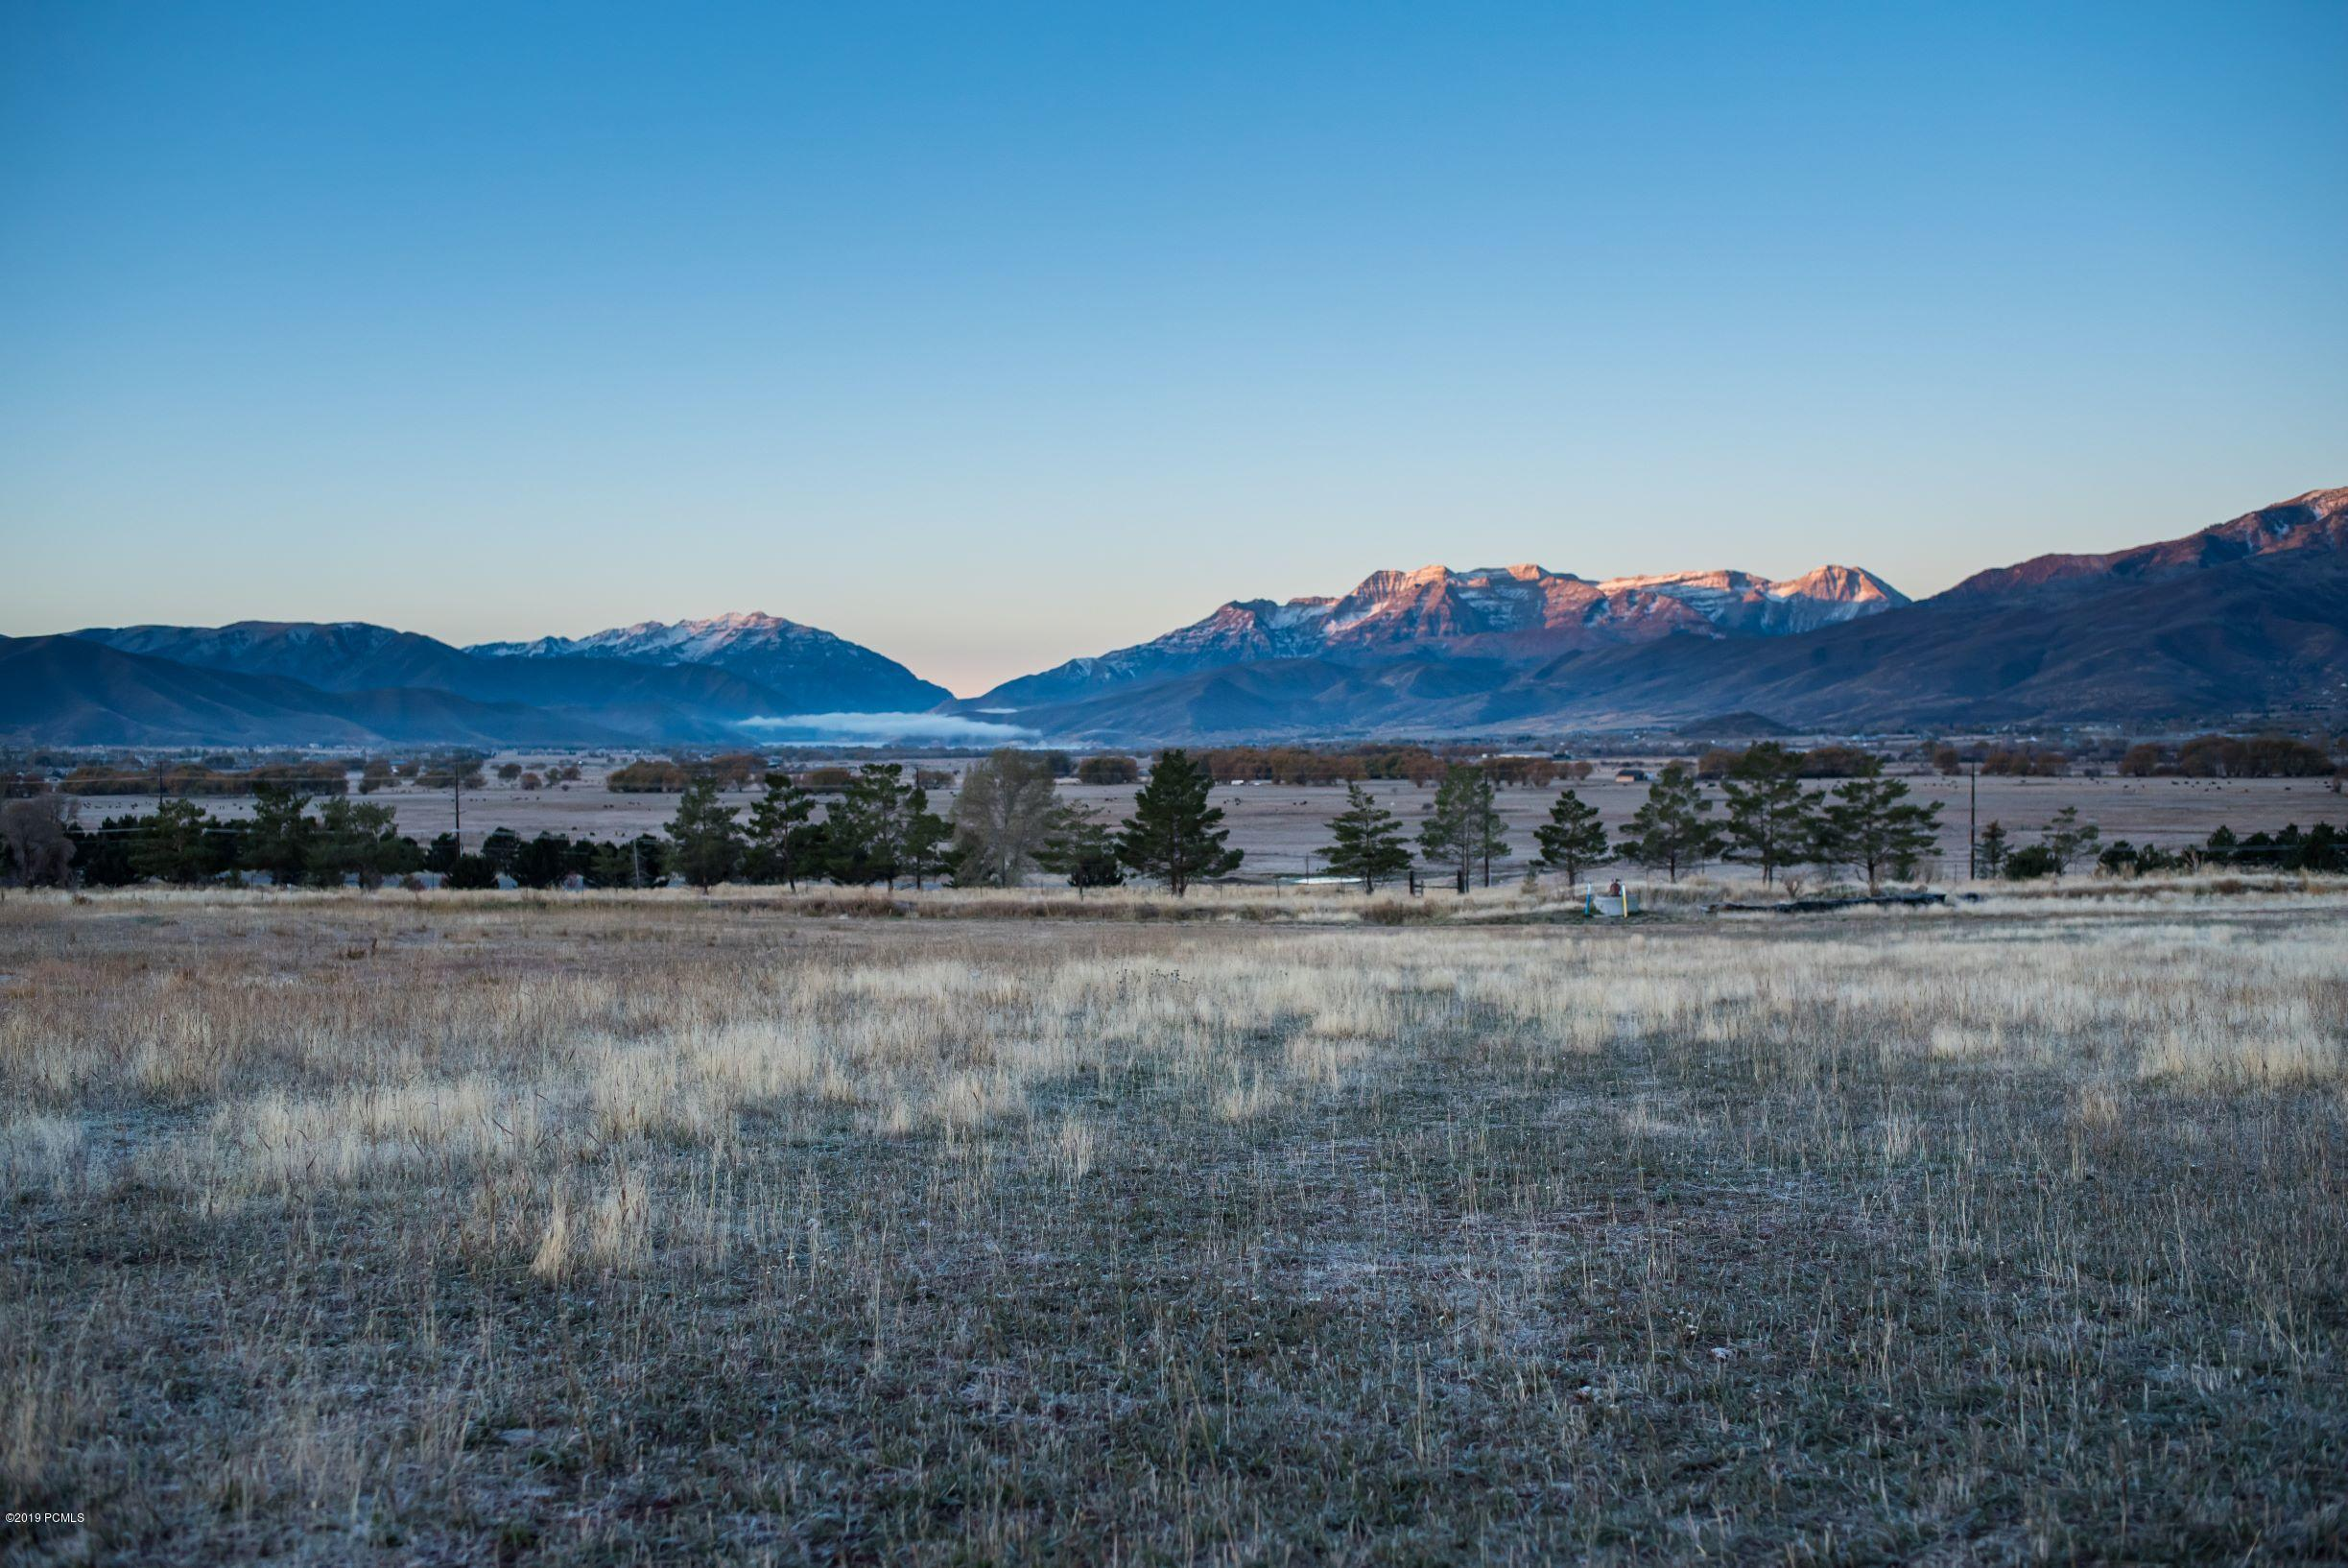 1005 Tatton Park Drive, Heber City, Utah 84032, ,Land,For Sale,Tatton Park,20190109112430415765000000